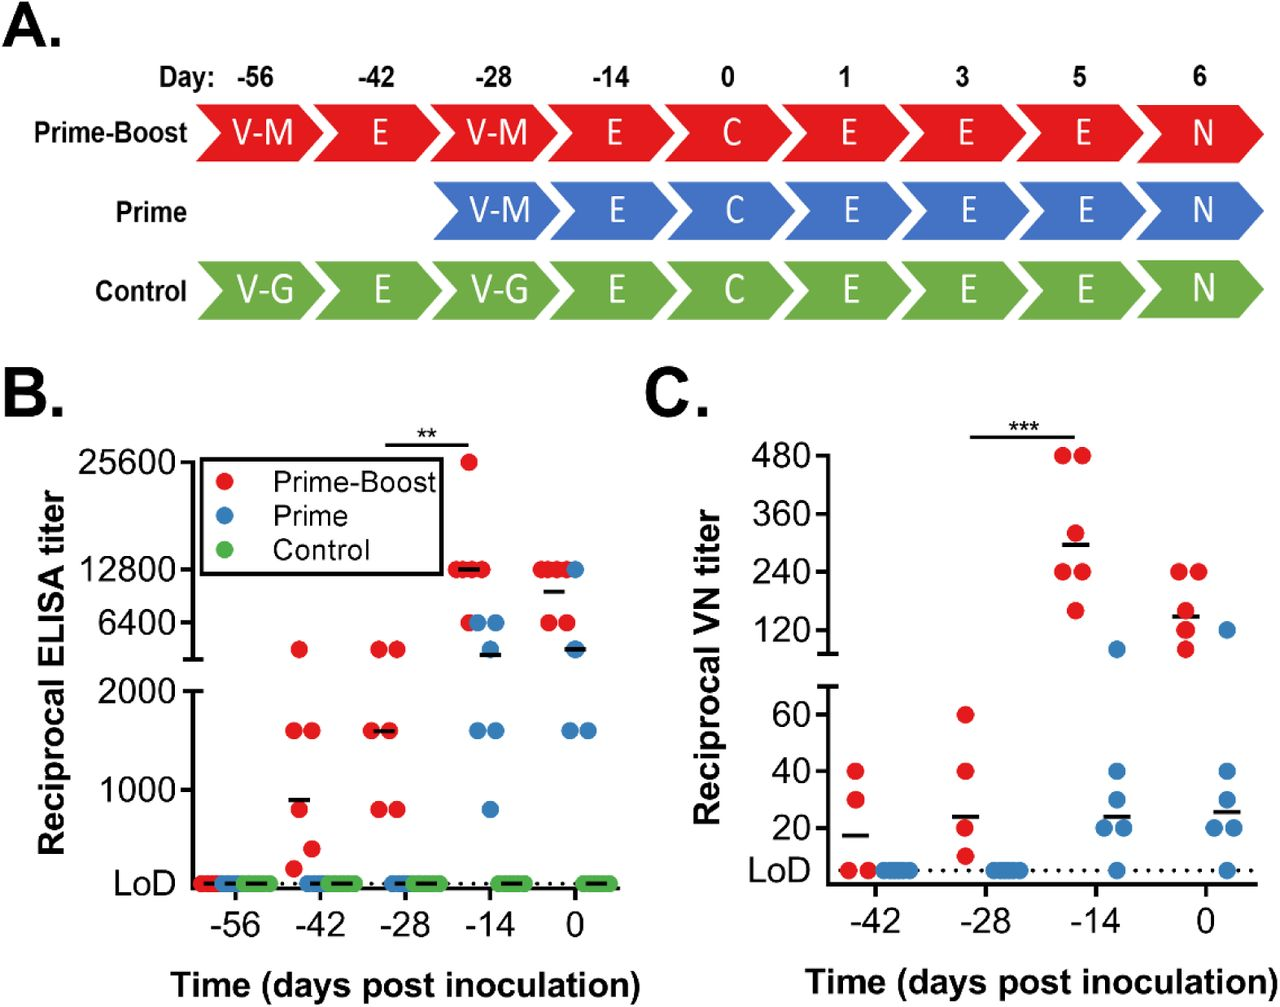 Vaccination of rhesus macaques with ChAdOx1 MERS elicits a humoral immune response. Serum samples were collected from non-human primates at times of vaccination (−56 DPI and -28 DPI), 14 days later and at challenge. (A) Overview of experimental timeline. V-M = vaccination with ChAdOx1 MERS; V-G = vaccination with ChAdOx1 GFP; E = exam; C = challenge and exam; N = exam and necropsy (B) Two-fold serial-diluted serum samples were tested for MERS-CoV S-specific antibodies using ELISA. (C) ELISA-positive two-fold serial-diluted serum samples were tested for neutralizing antibodies against MERS-CoV in VeroE6 cells. Line = geometric mean, dotted line = limit of detection. Statistical significance between -28 DPI and -14 DPI in the prime-boost group was determined via one-tailed paired Student's t-test. ** = p-value